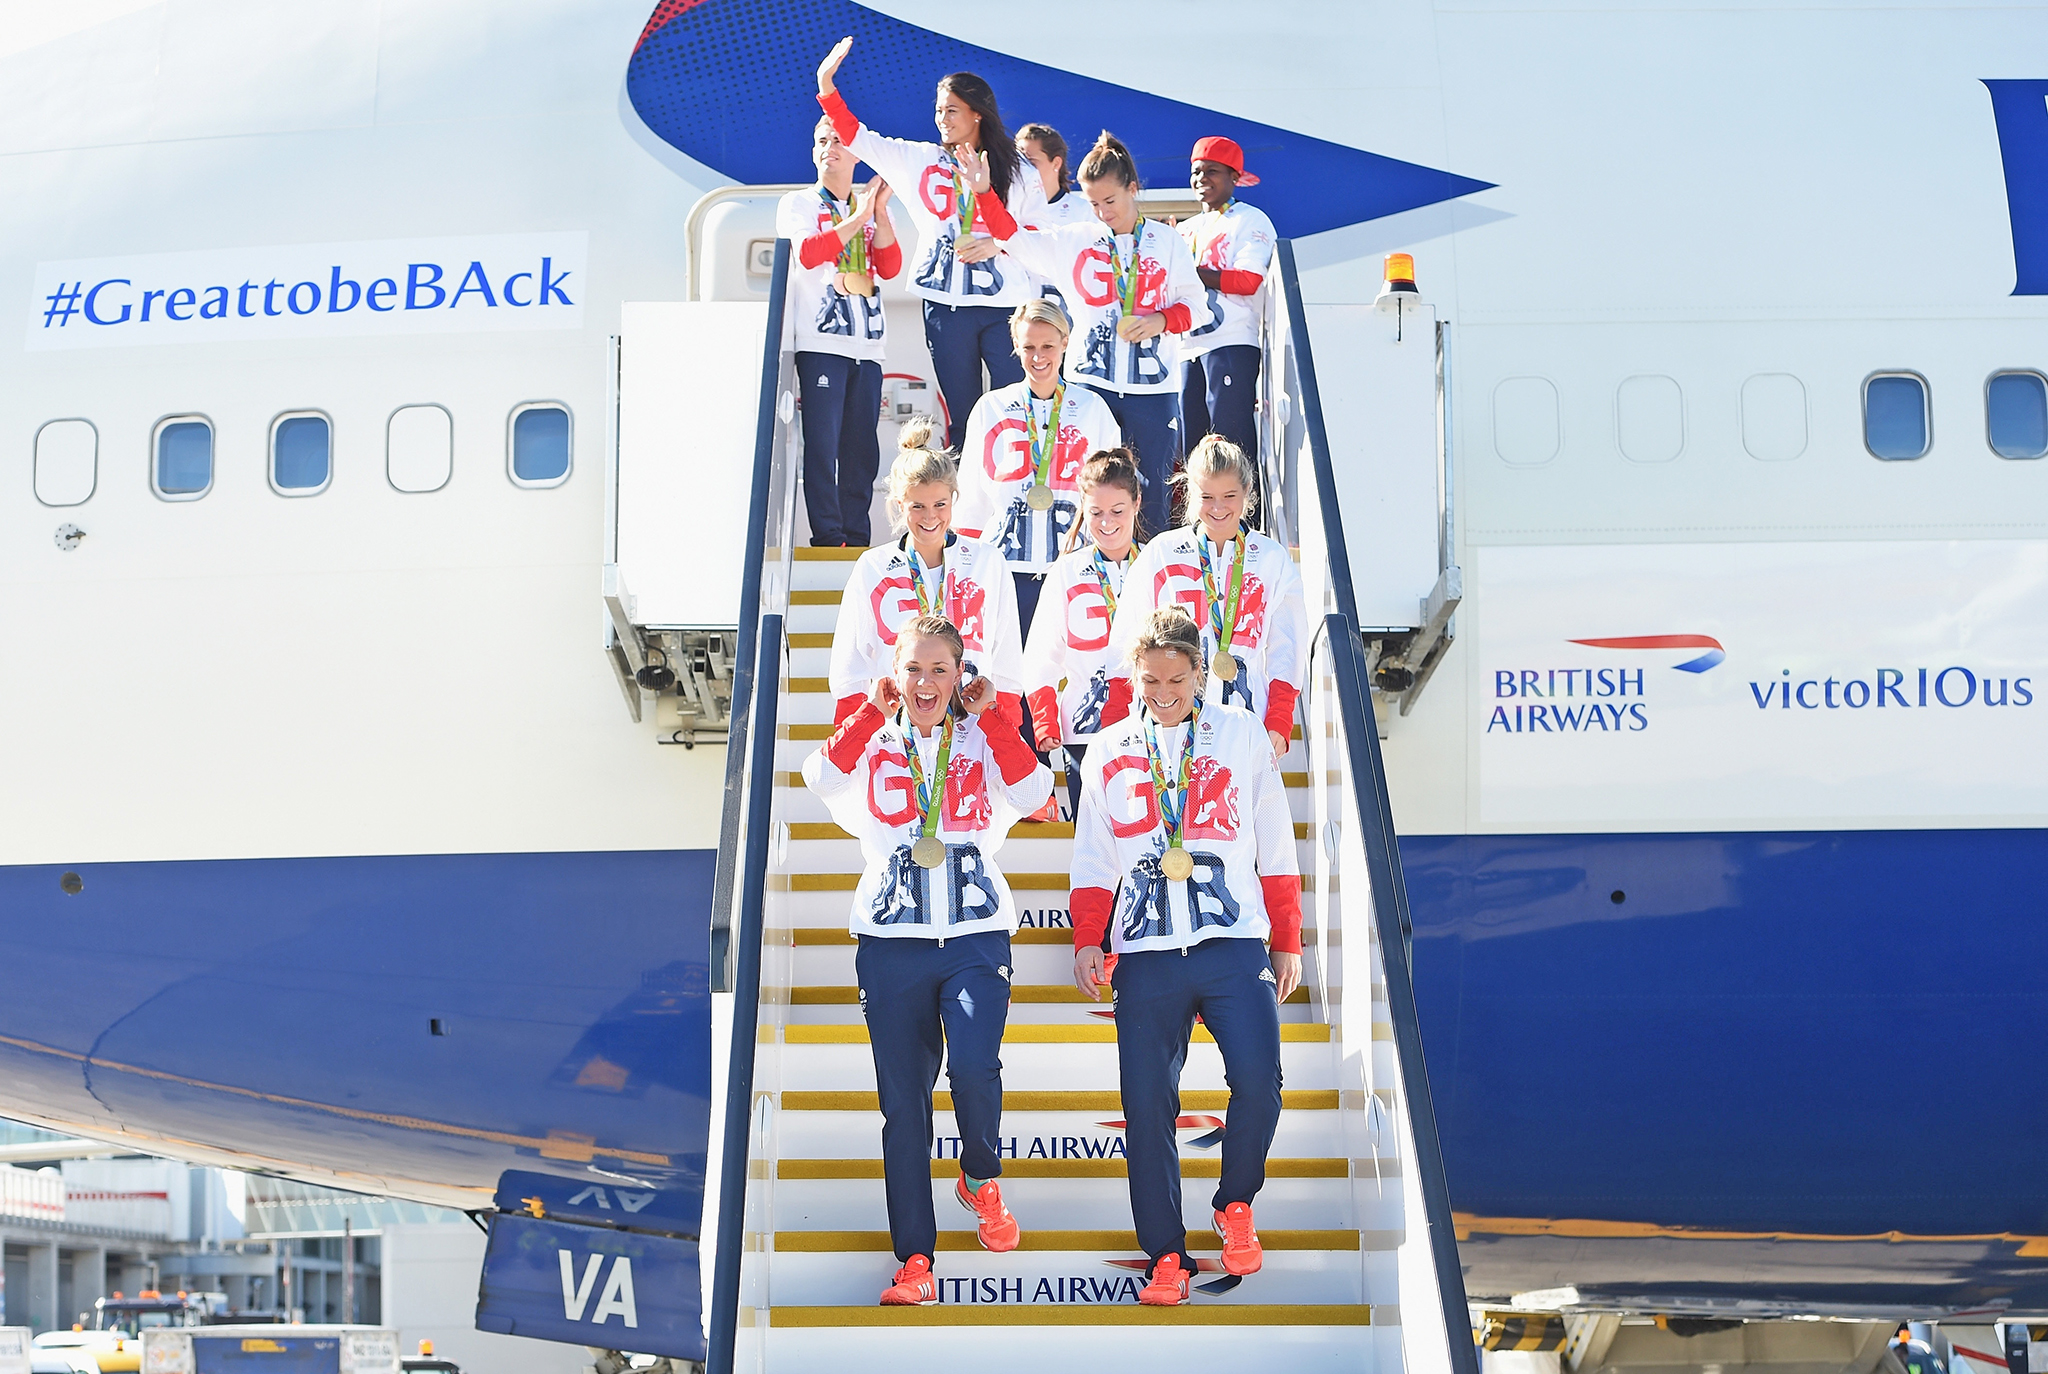 LONDON, ENGLAND - AUGUST 23:  Team GB athletes and members of the women's gold medal winning hockey team leave the aeroplane after arriving home at Heathrow Airport on August 23, 2016 in London, England. The 2016 British Olympic Team arrived back to Heathrow on a British Airways flight today having finished second in the medal table at the Rio Olympics. They totalled 67 medals including 27 Gold and 23 Silver in Great Britain's strongest Olympic performance in over a century.